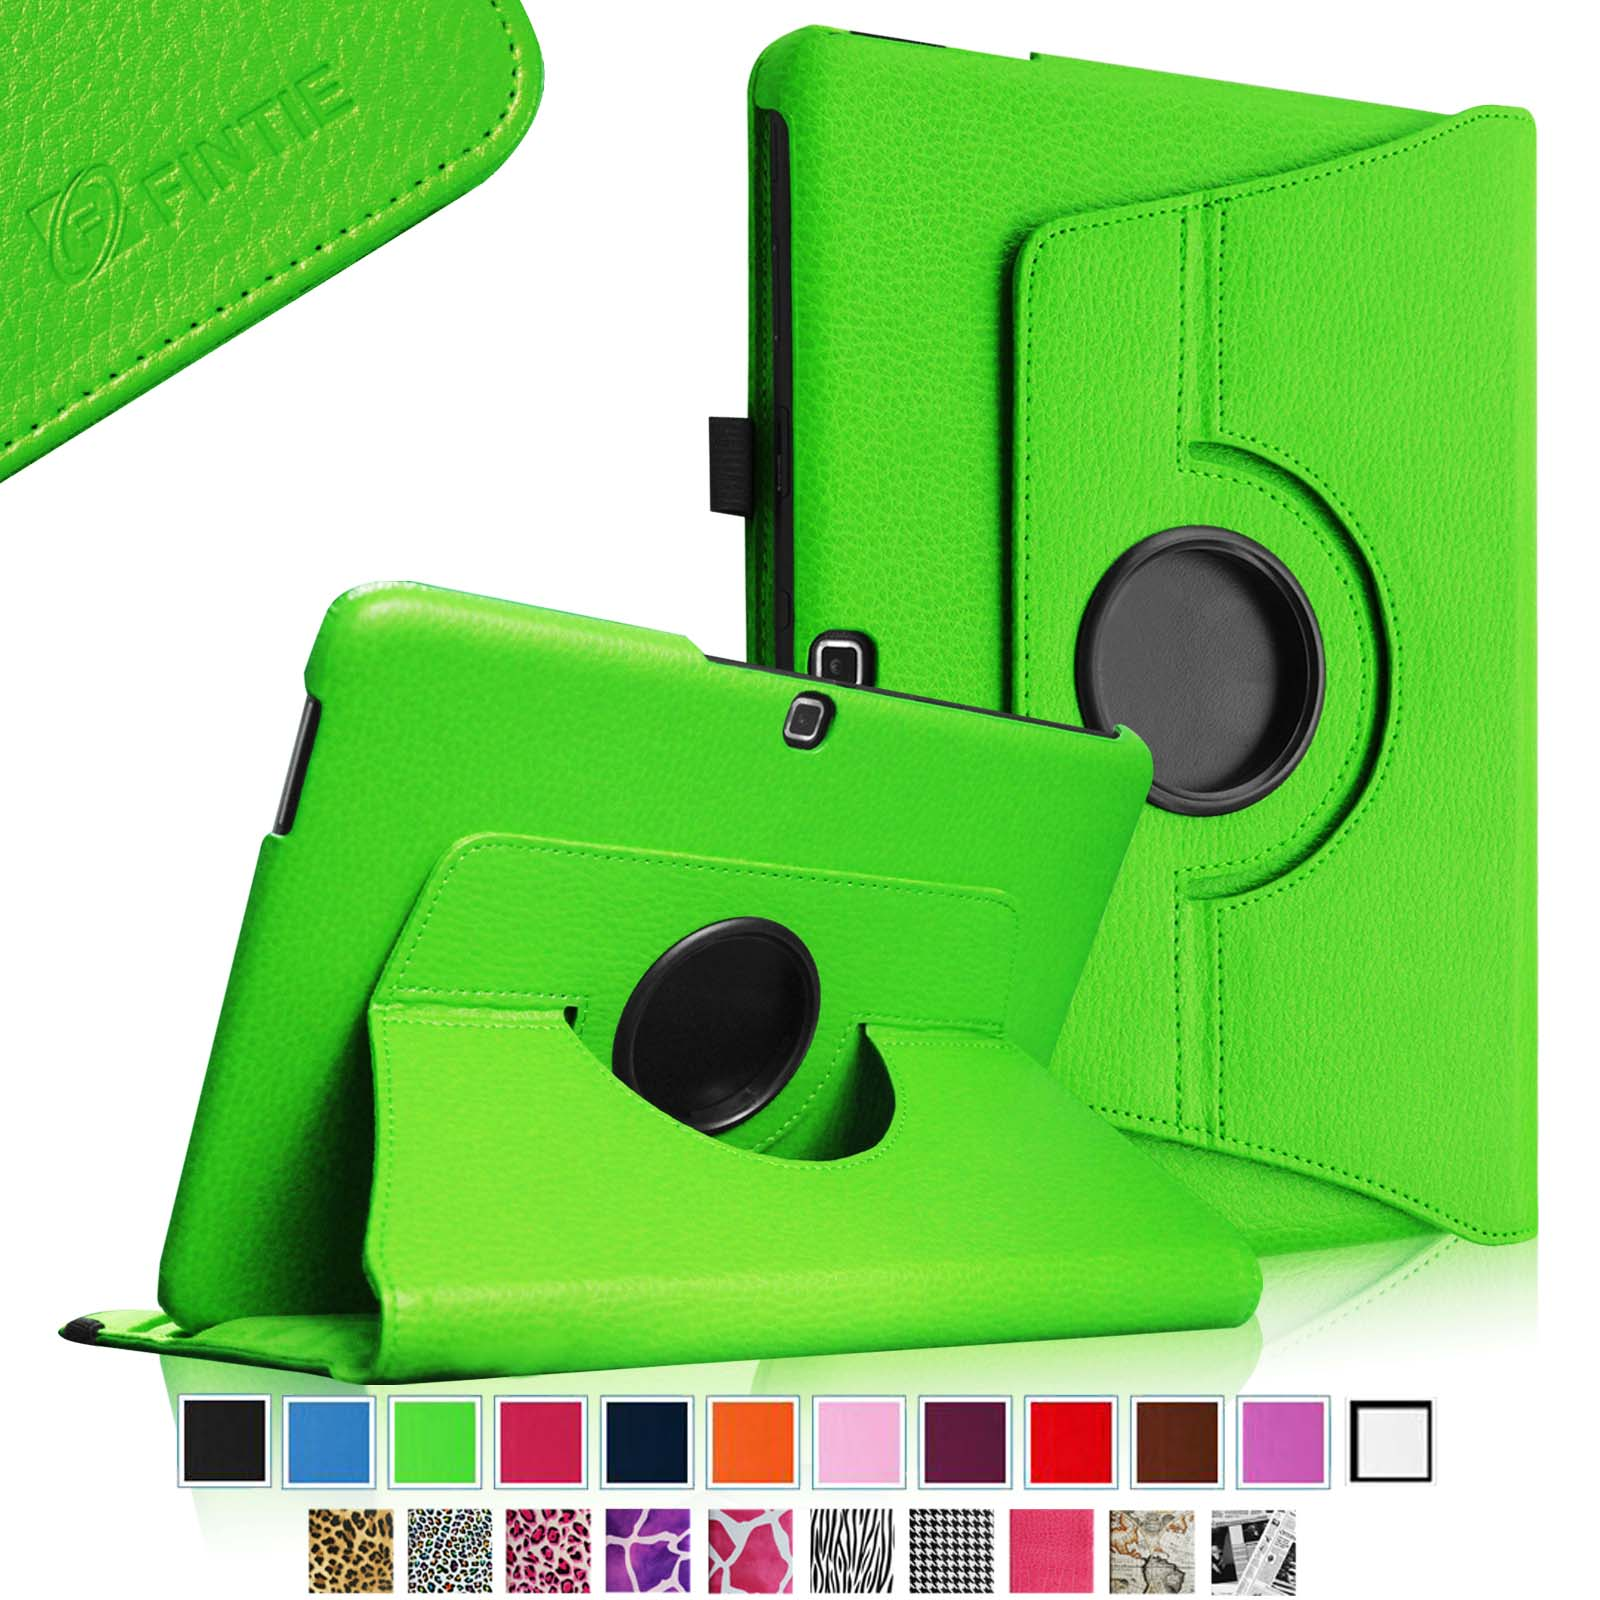 Fintie Samsung Galaxy Tab 4 10.1 inch Tablet Rotating Case - 360 Degree Rotating PU Leather Stand Cover, Green